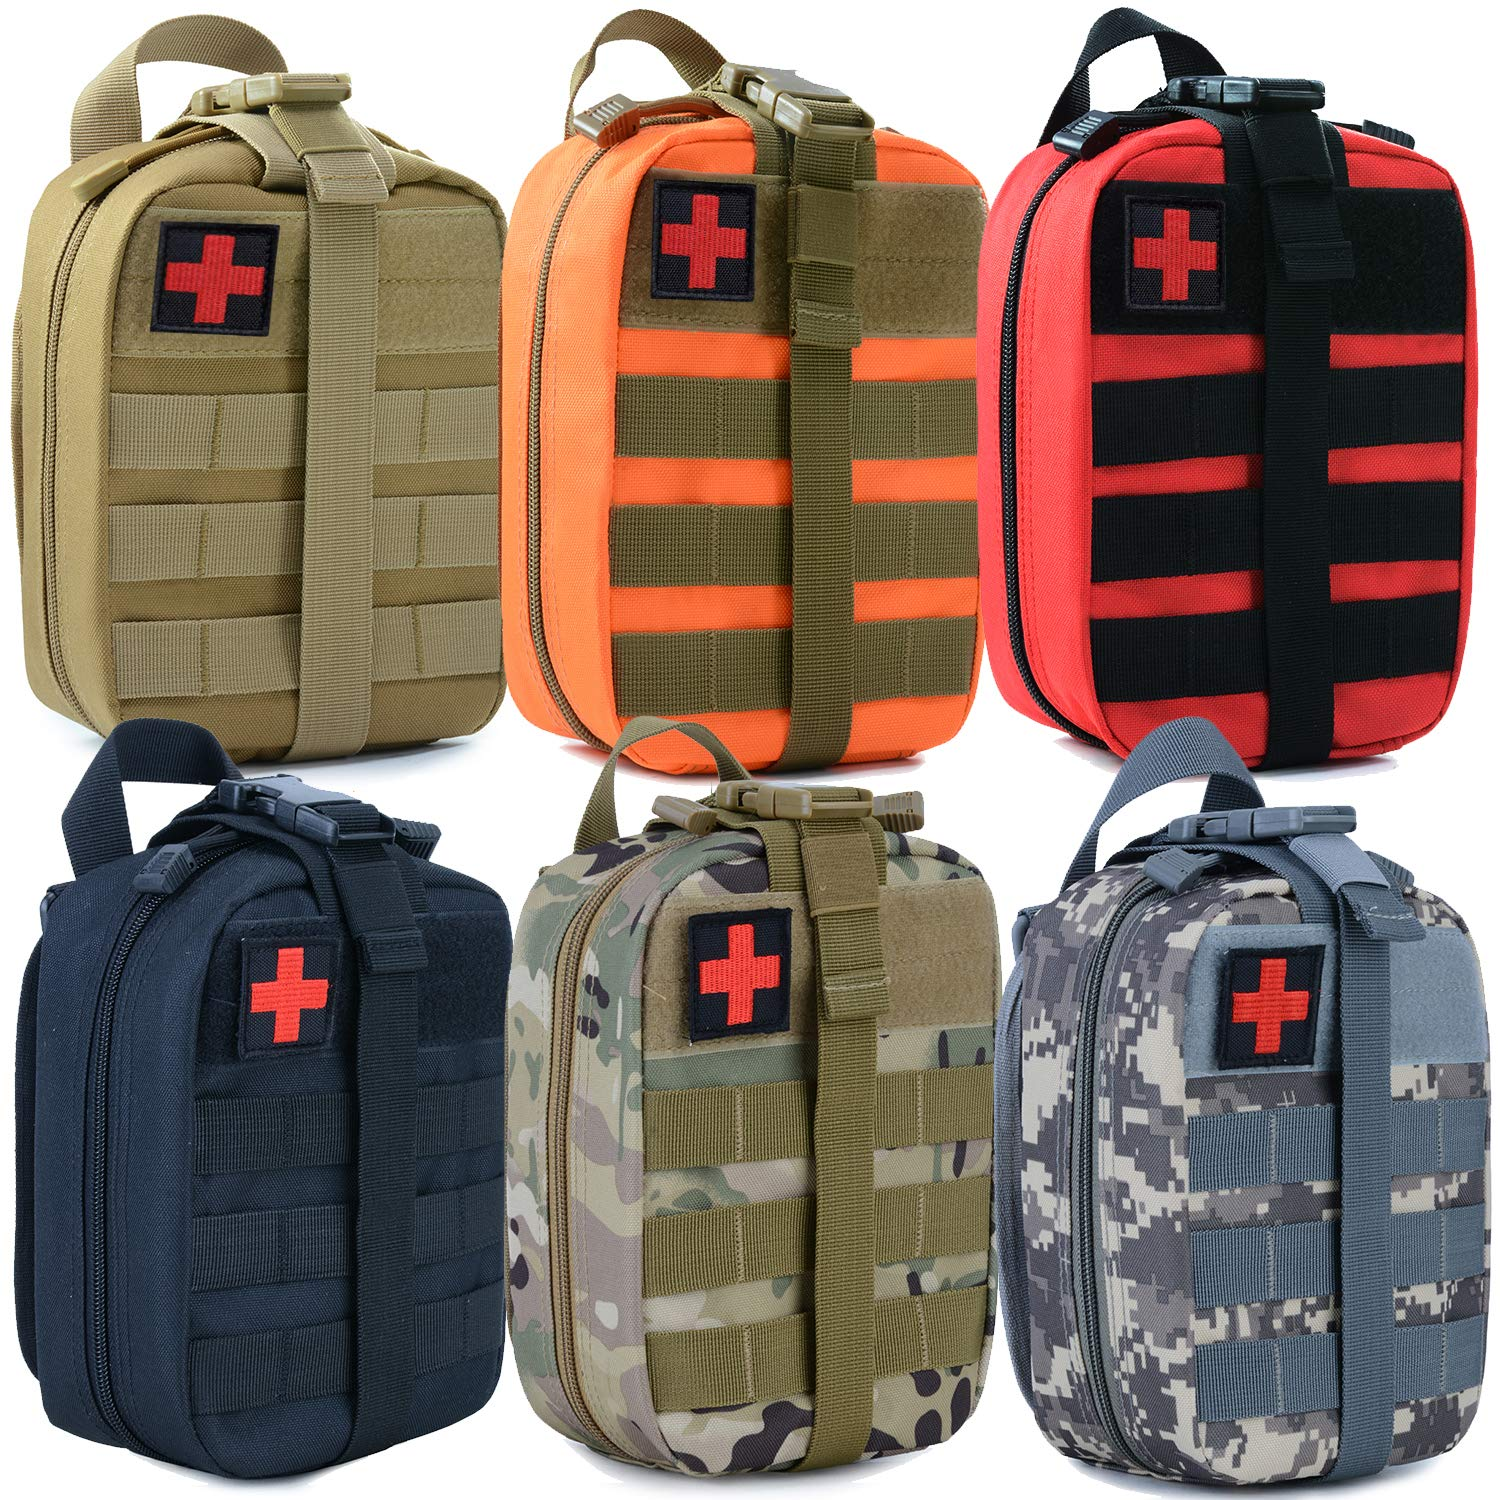 MEWAY Tactical MOLLE EMT Medical First Aid IFAK Pouch Molle Pouch Tactical Pouches Utility Pouch Tactical Accessory Pouch